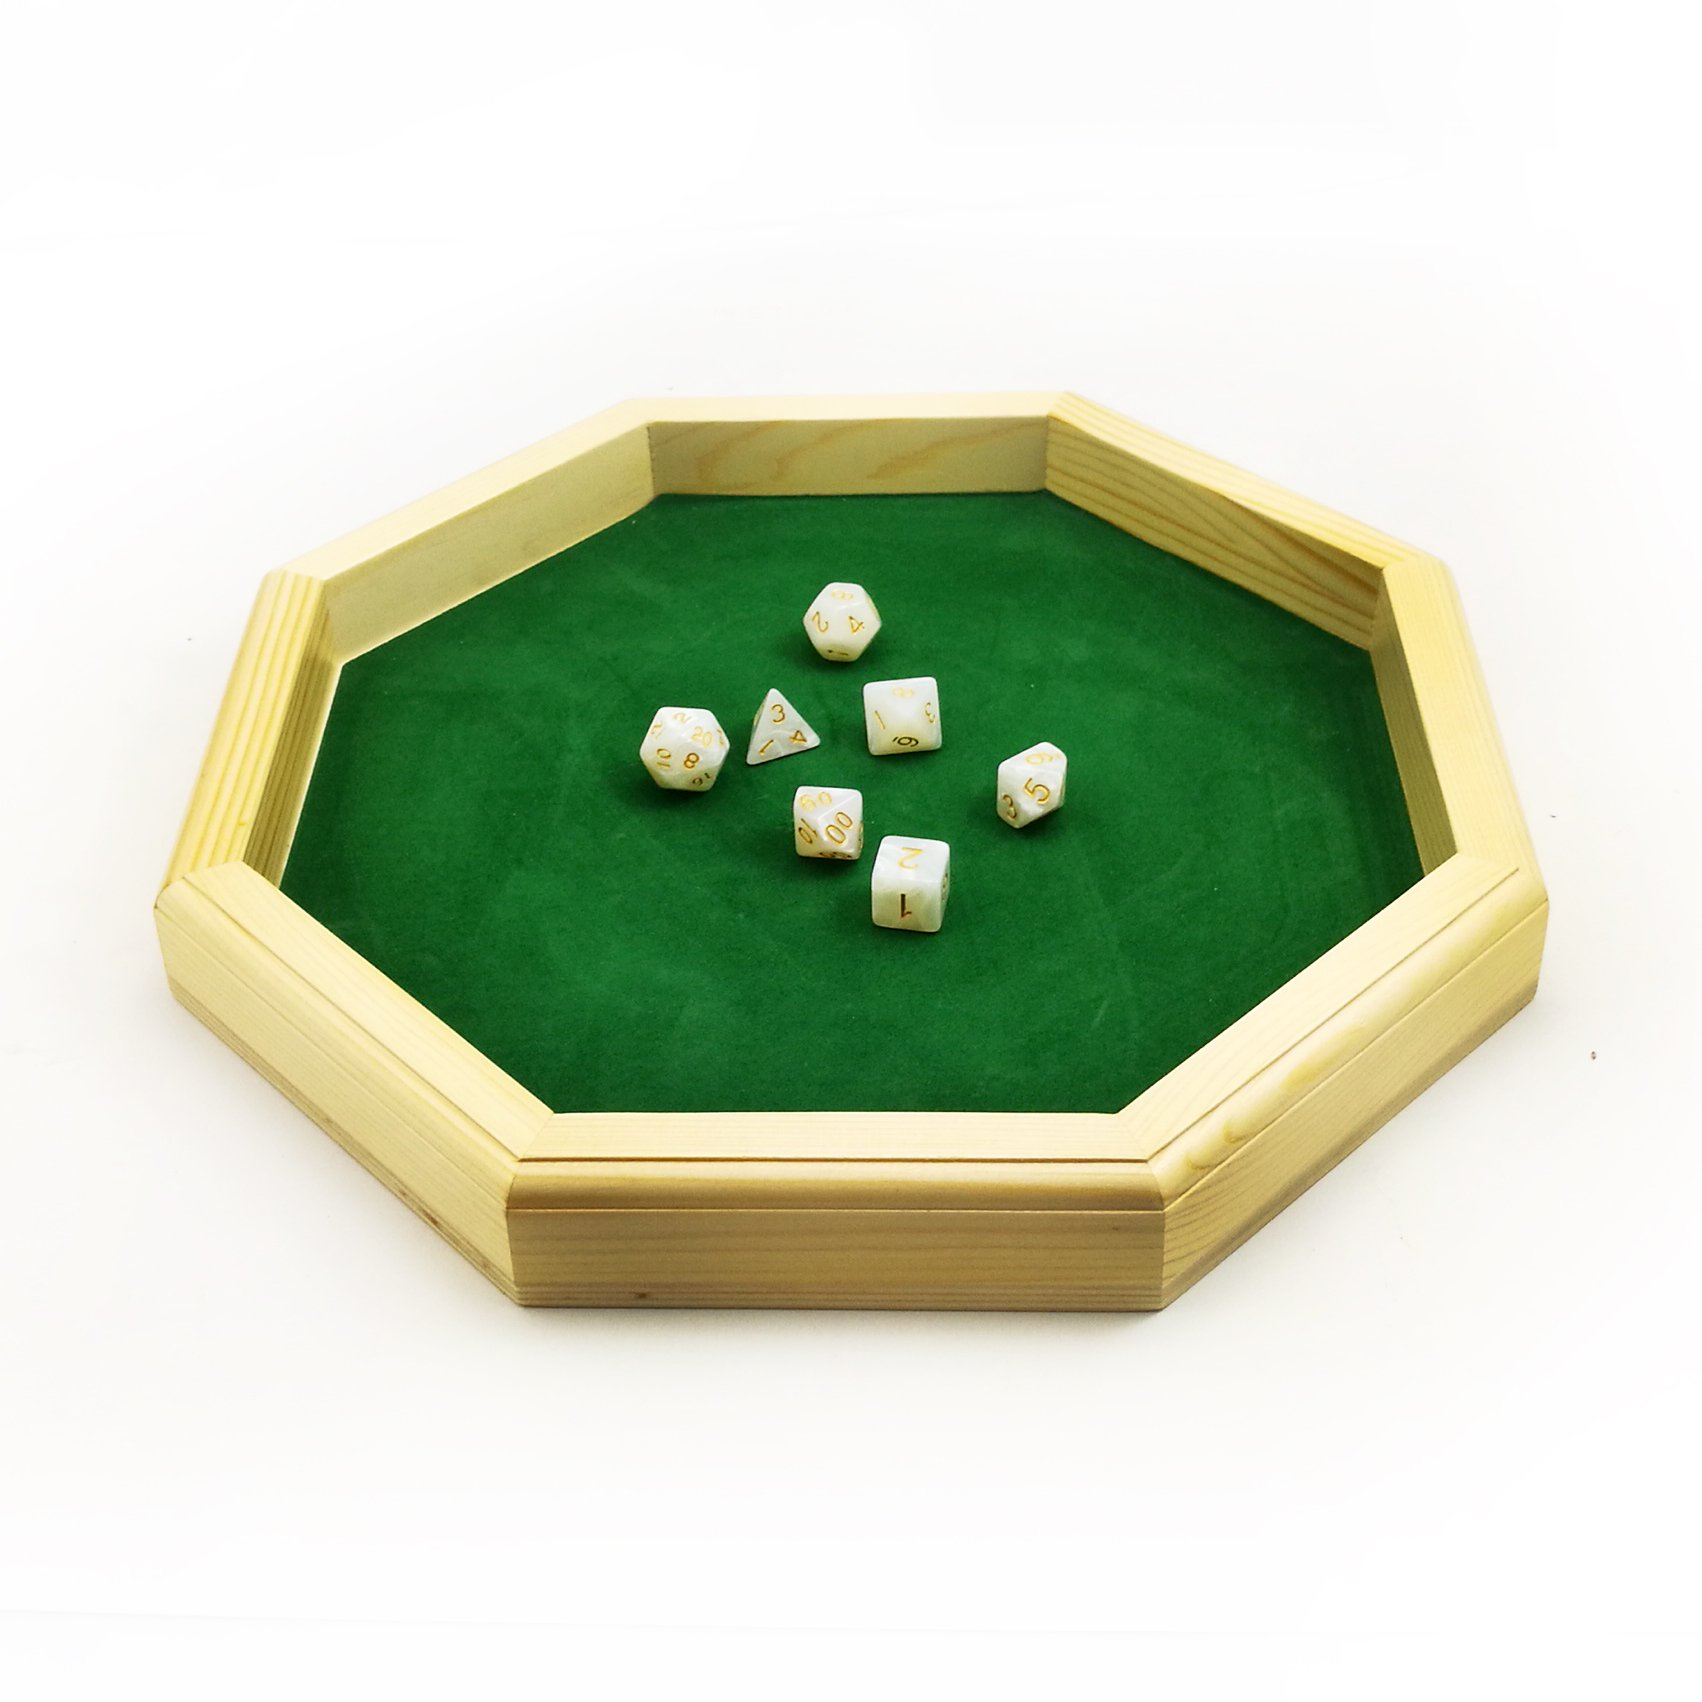 Heavy Duty 12 Inch Octagonal Wooden Dice Tray with Felt Lined Rolling Surface by BESCON DICE